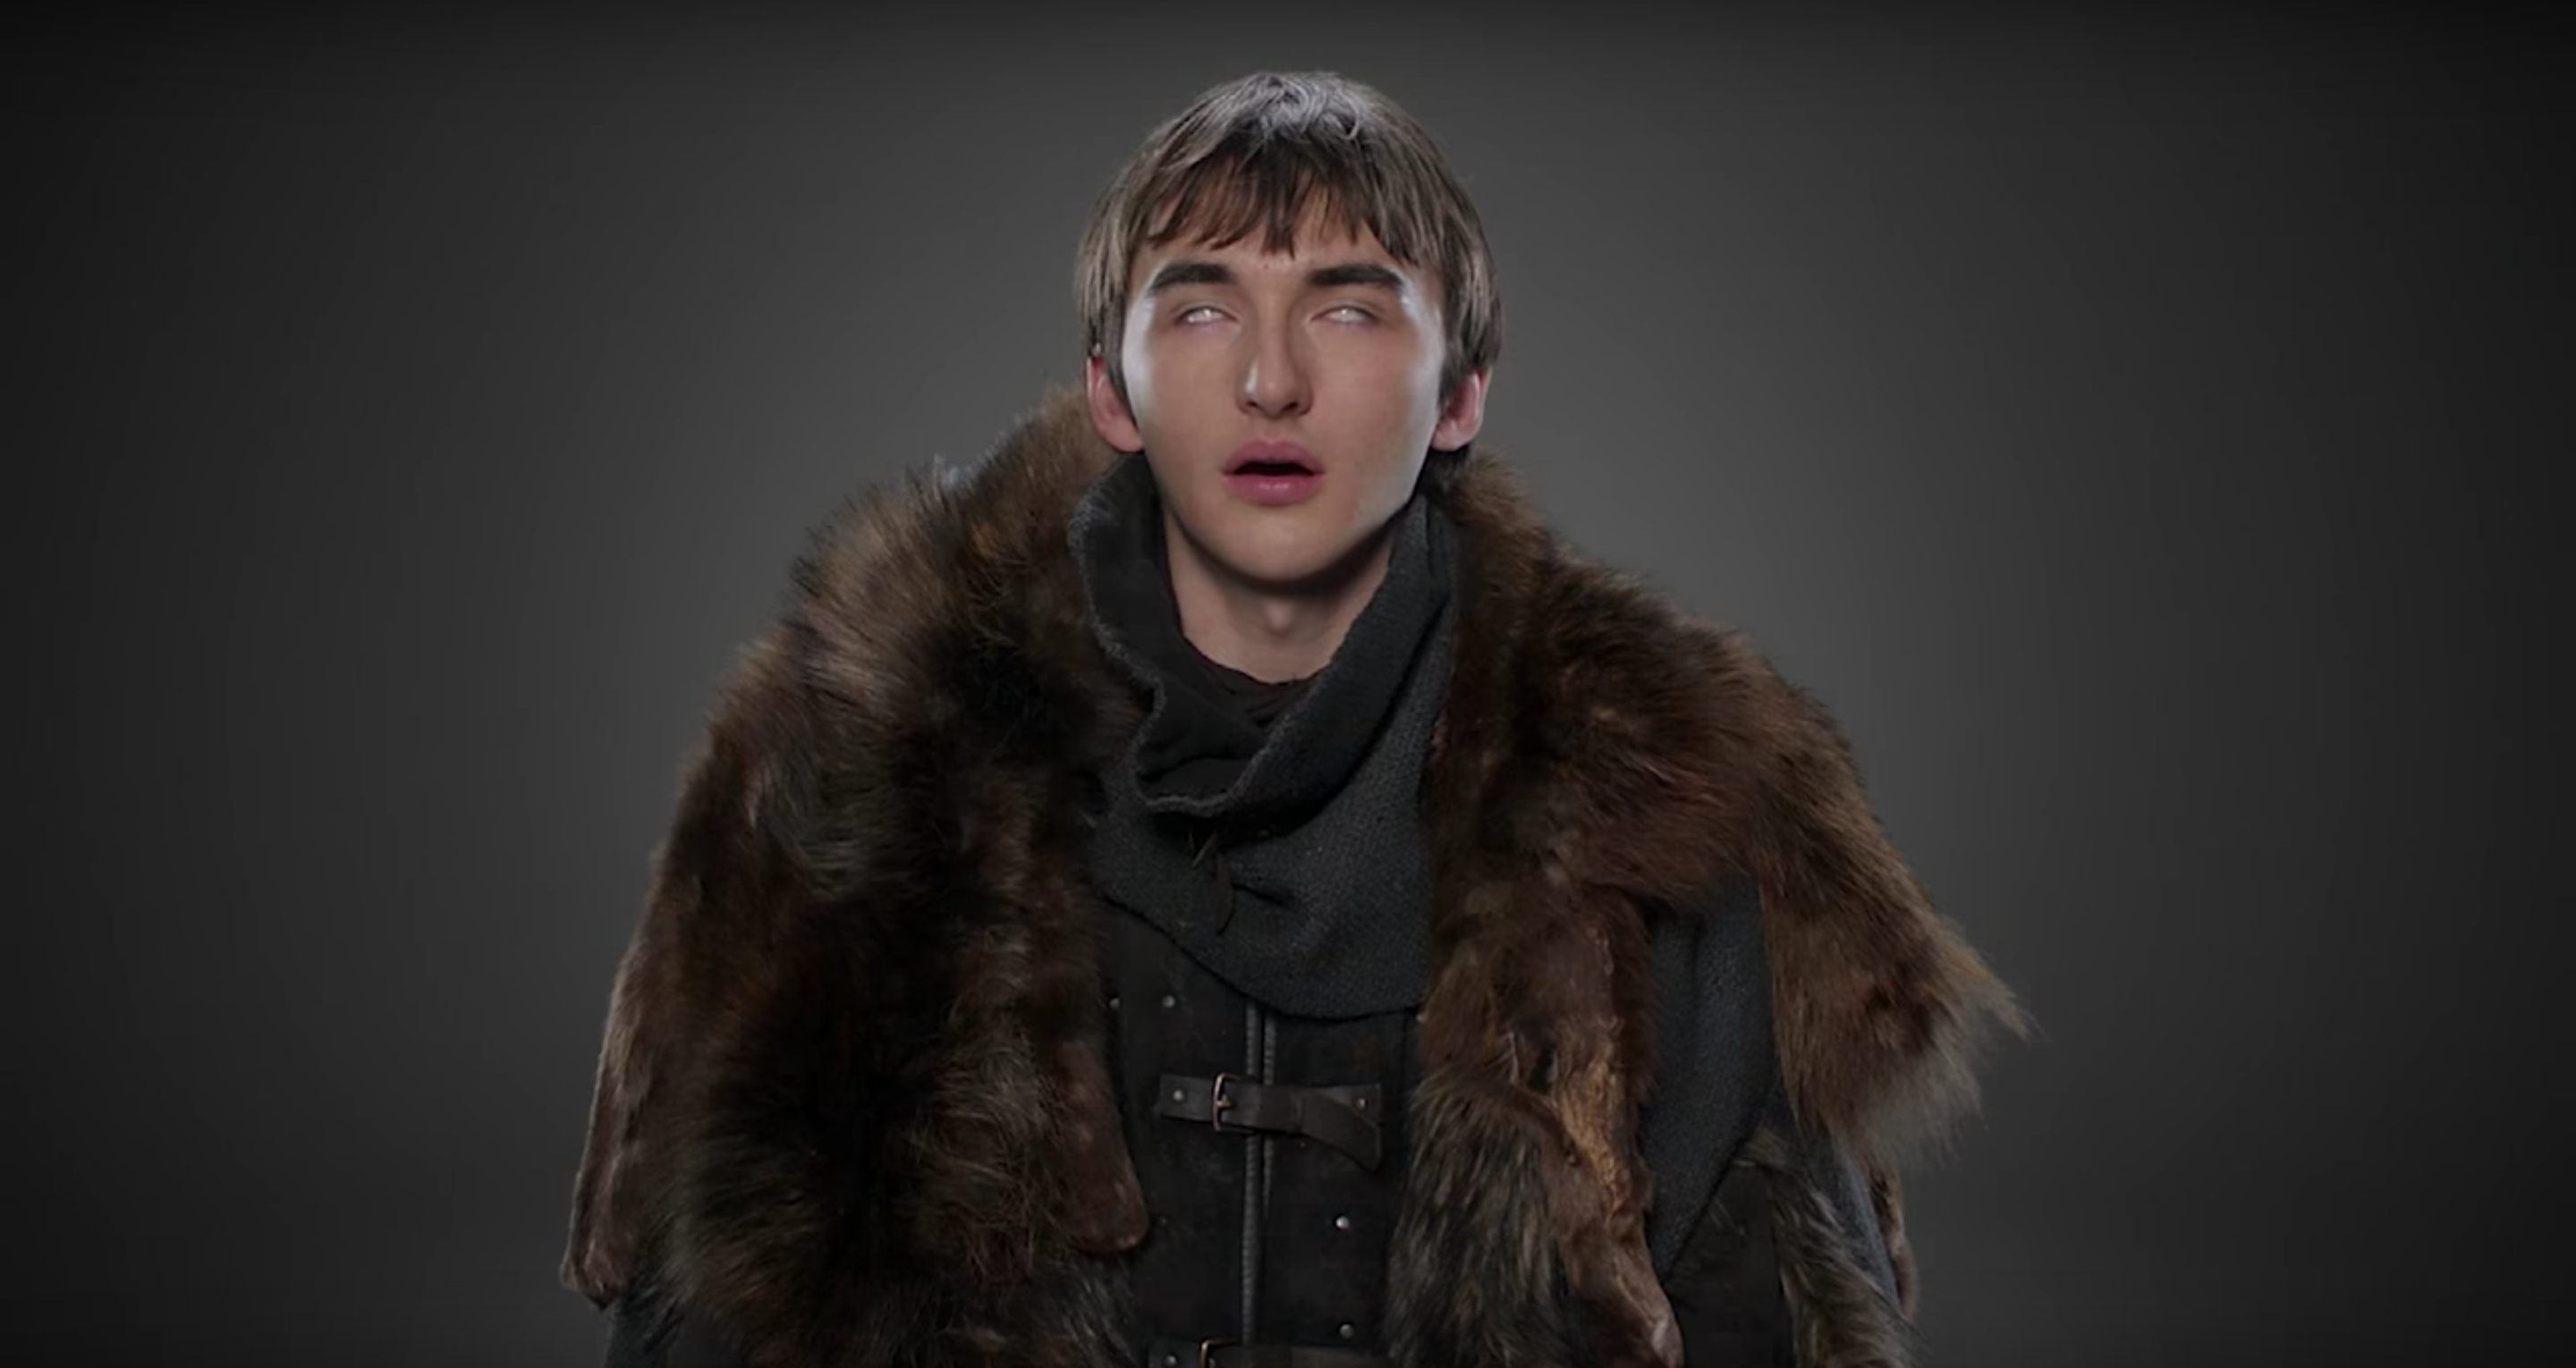 Game of Thrones: Who's got magical powers, and what can they